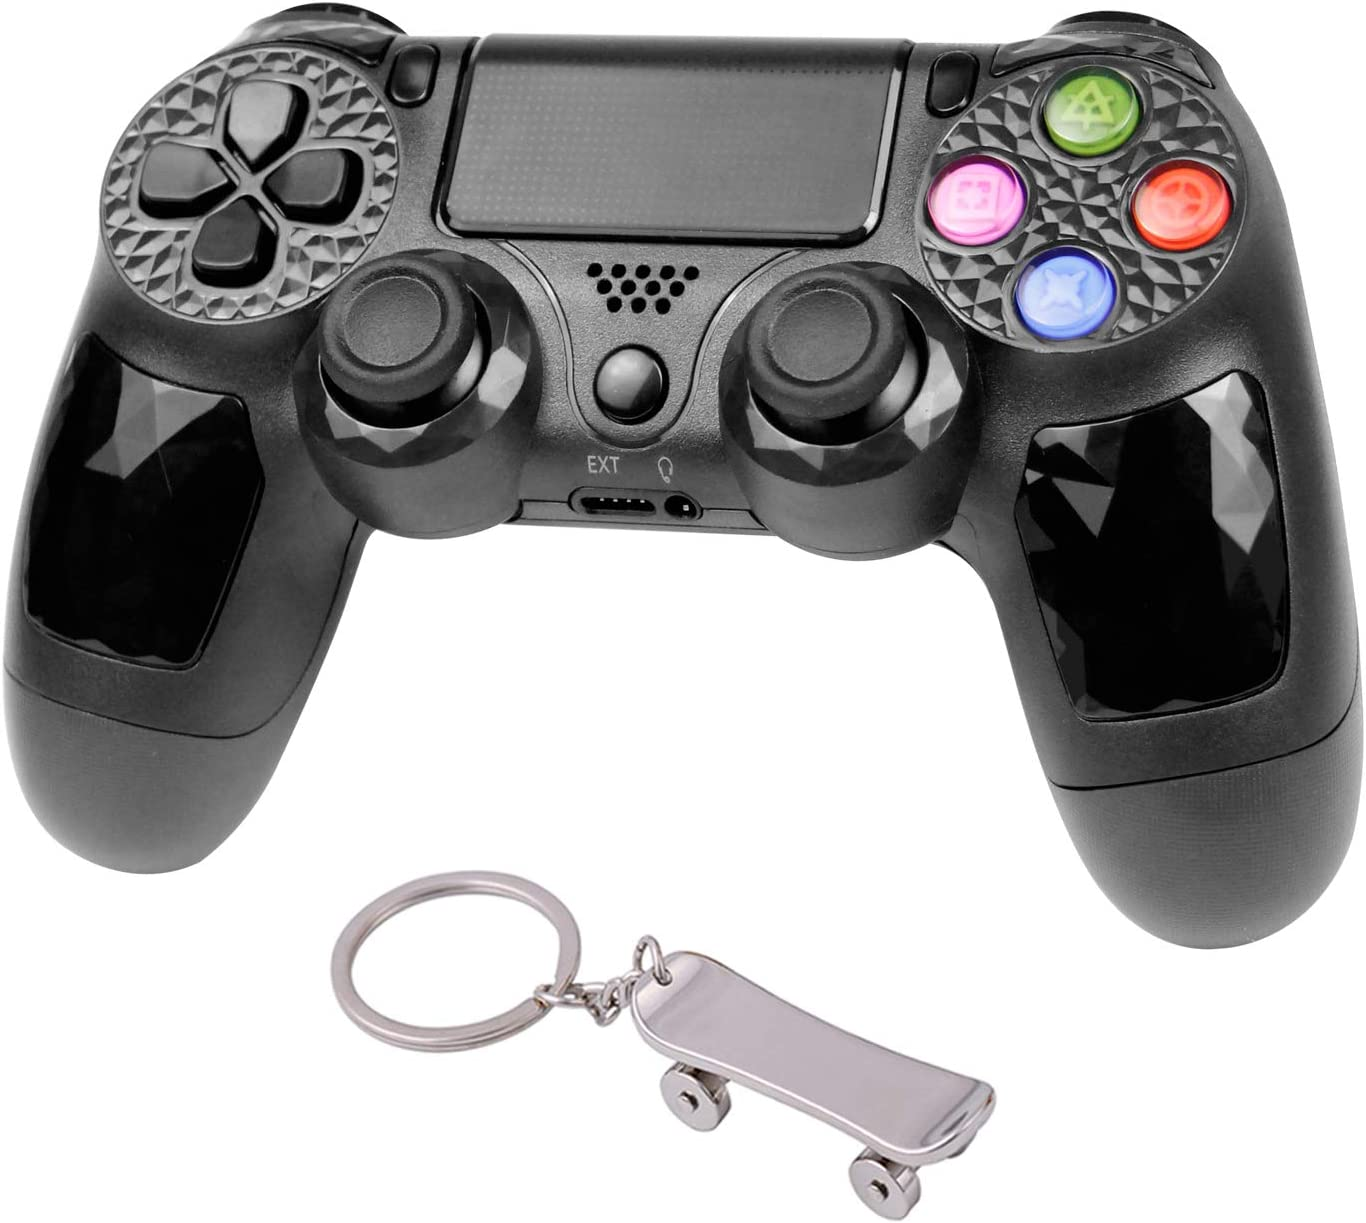 Wireless Controller for PS4, Professional Six-axis Gaming Controller Wireless Dual Shock Gamepad with Built-in Speaker and LED Touch Pad for Playstation 4, Playstation 3, PC, Laptop